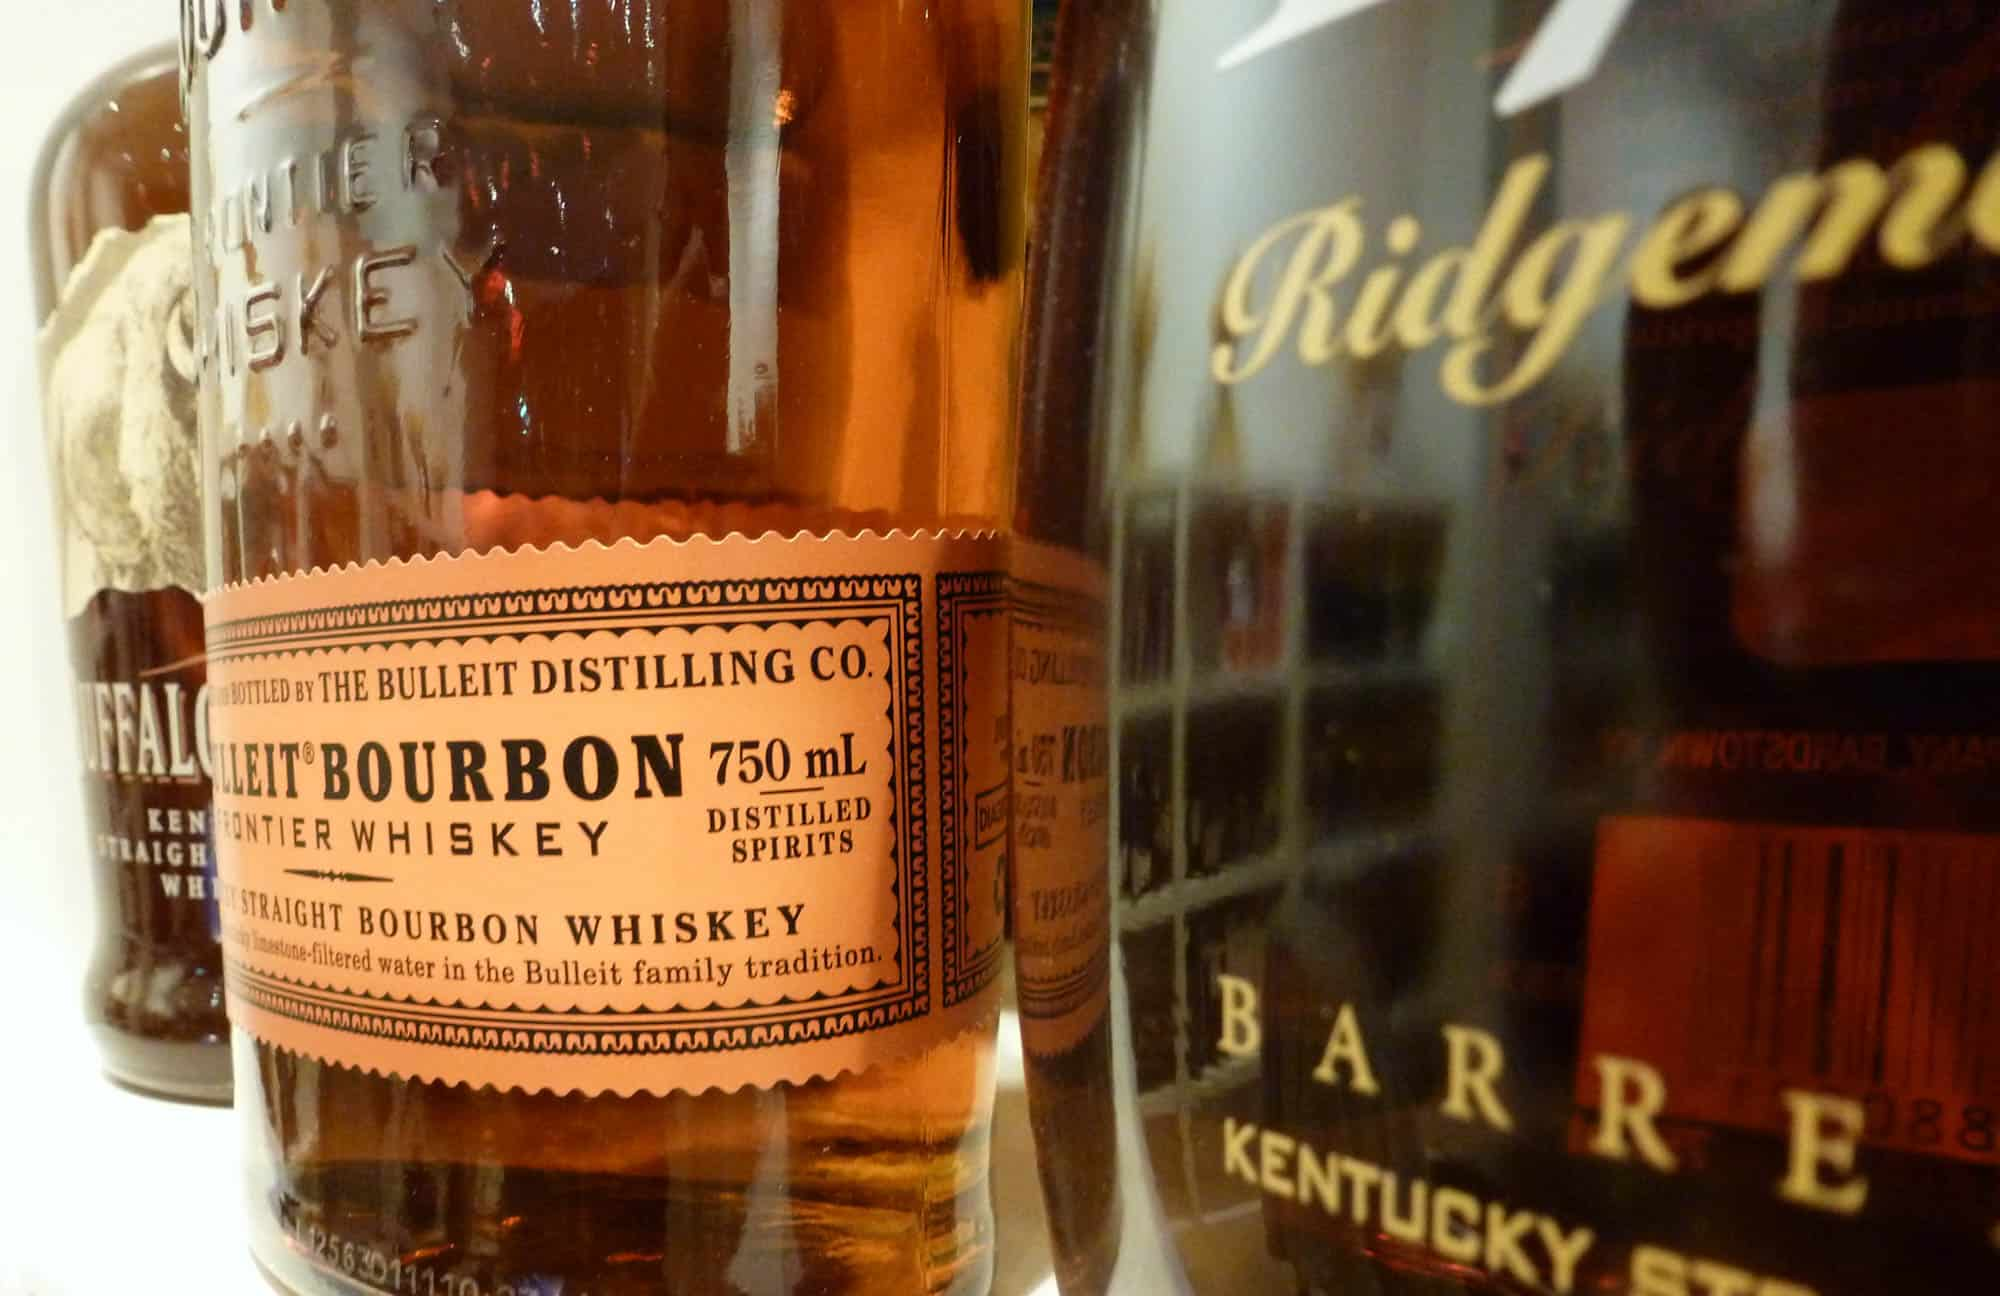 How to drink whiskey: rules and traditions